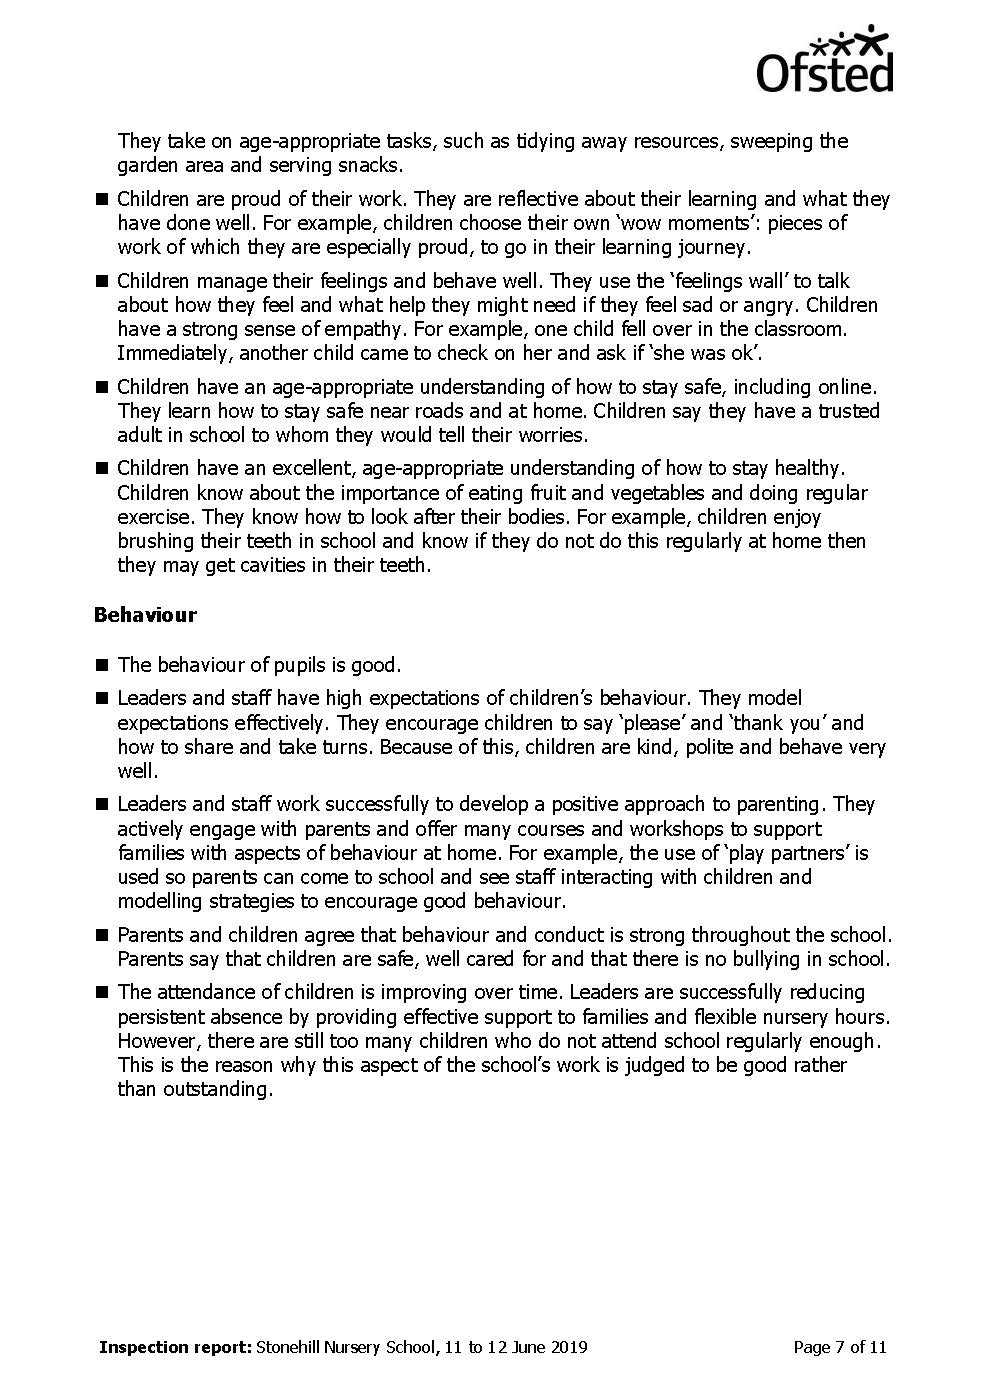 Stonehill OFSTED Report 2019_Page_07.jpg